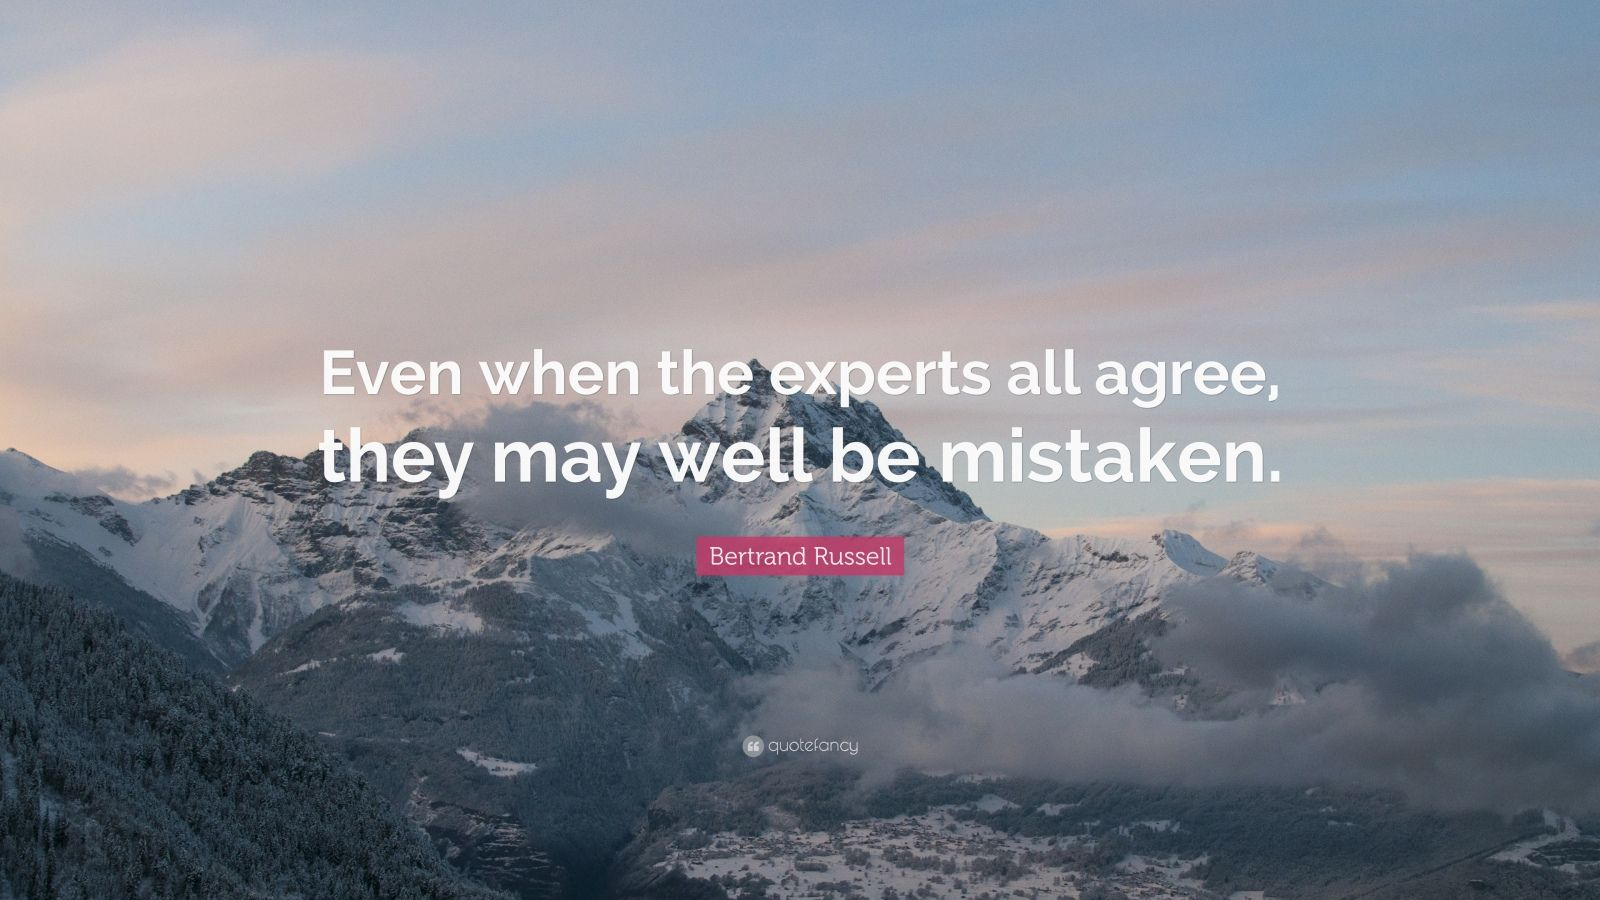 """Bertrand Russell Quote: """"Even when the experts all agree, they may well be mistaken."""""""